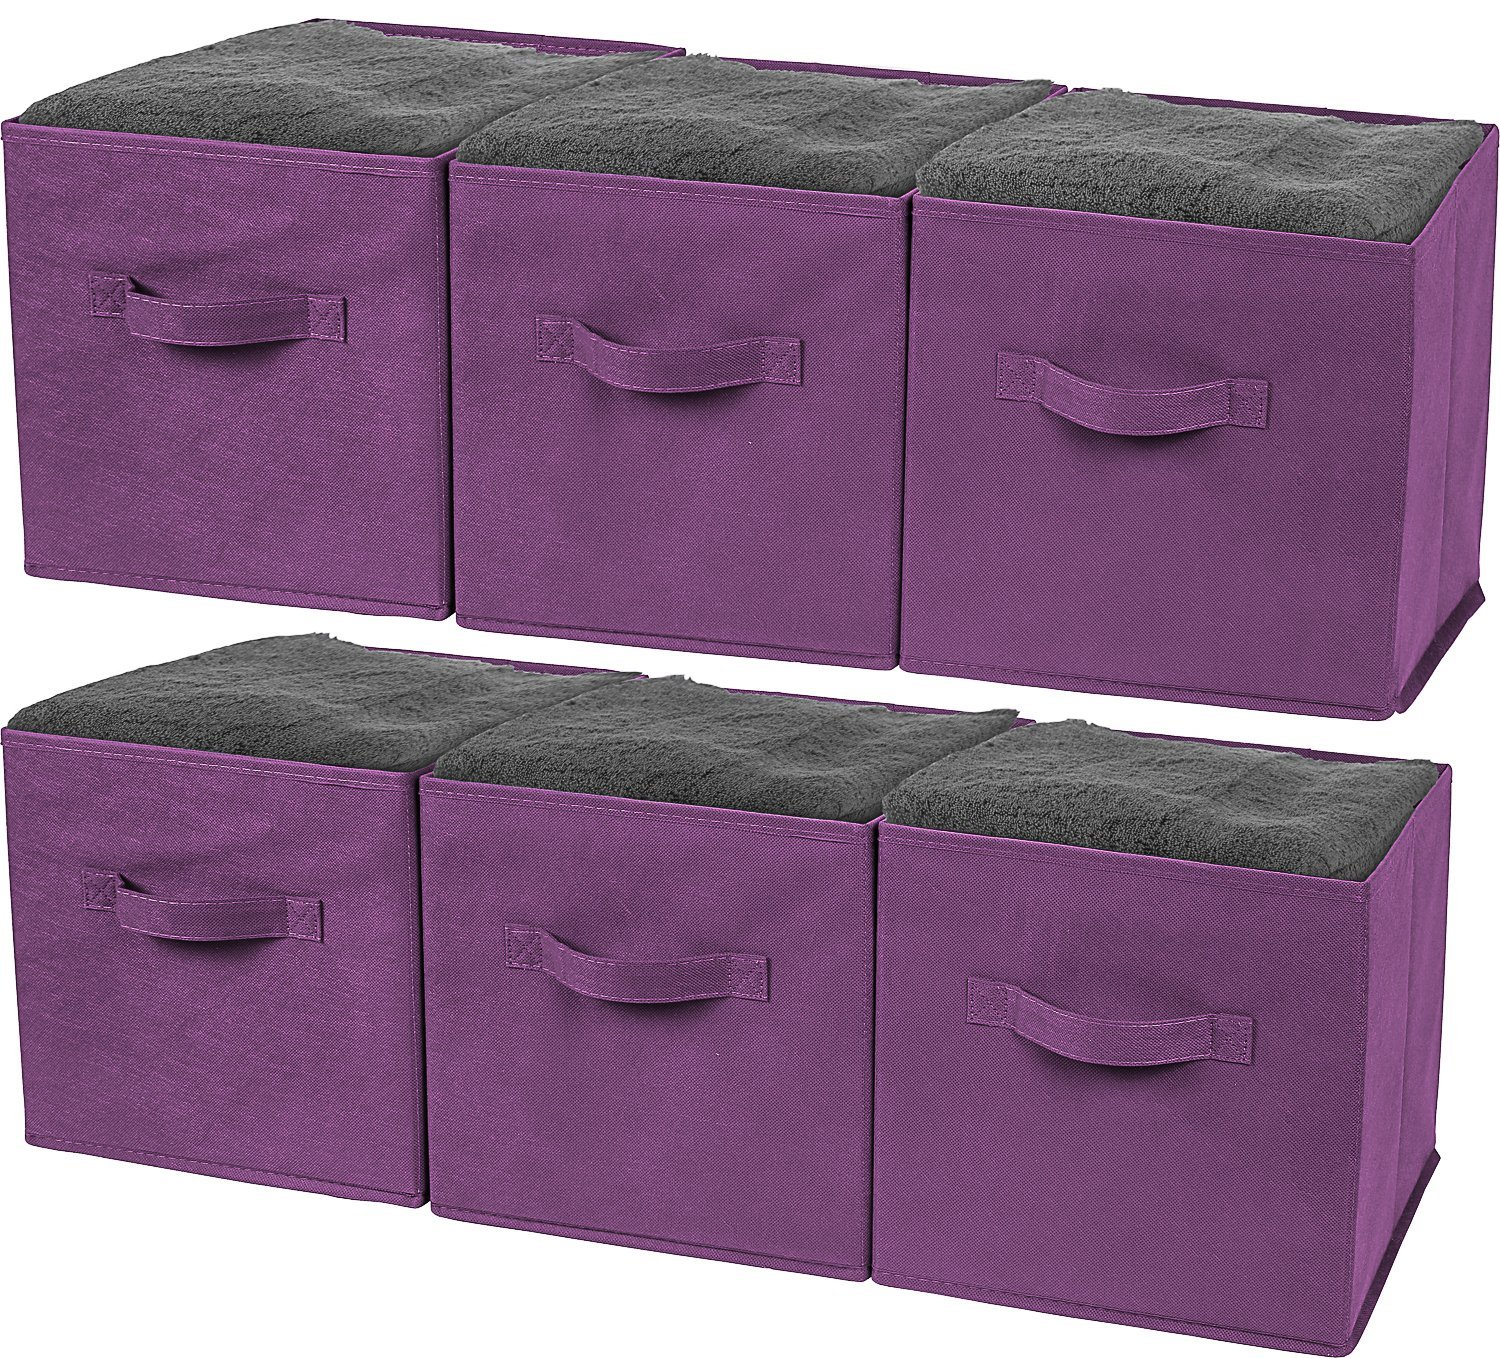 Greenco Foldable Storage Cubes Non-woven Fabric -6 Pack-(Purple)